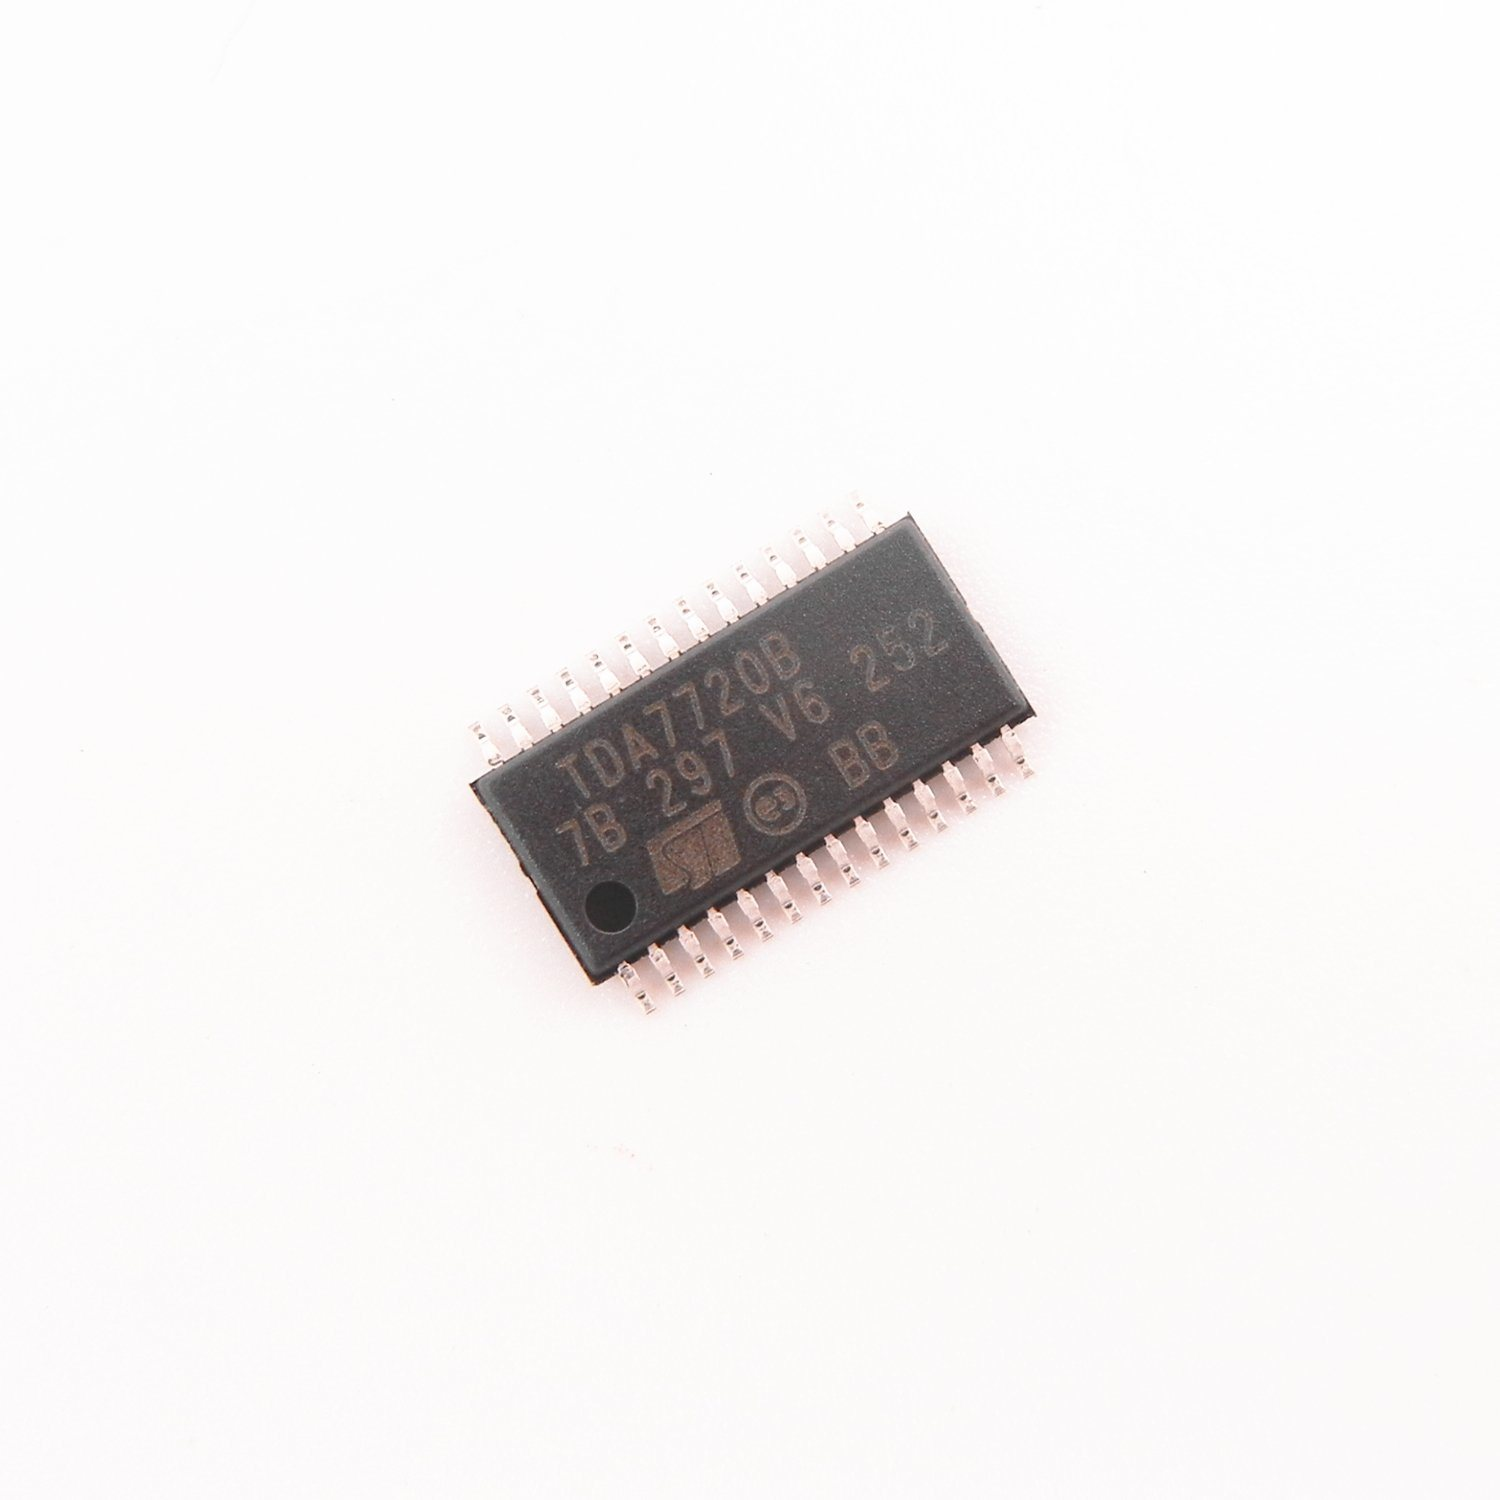 China Tda7720b Electronic Components Ic Transistor Power Electronics Circuit Resistor